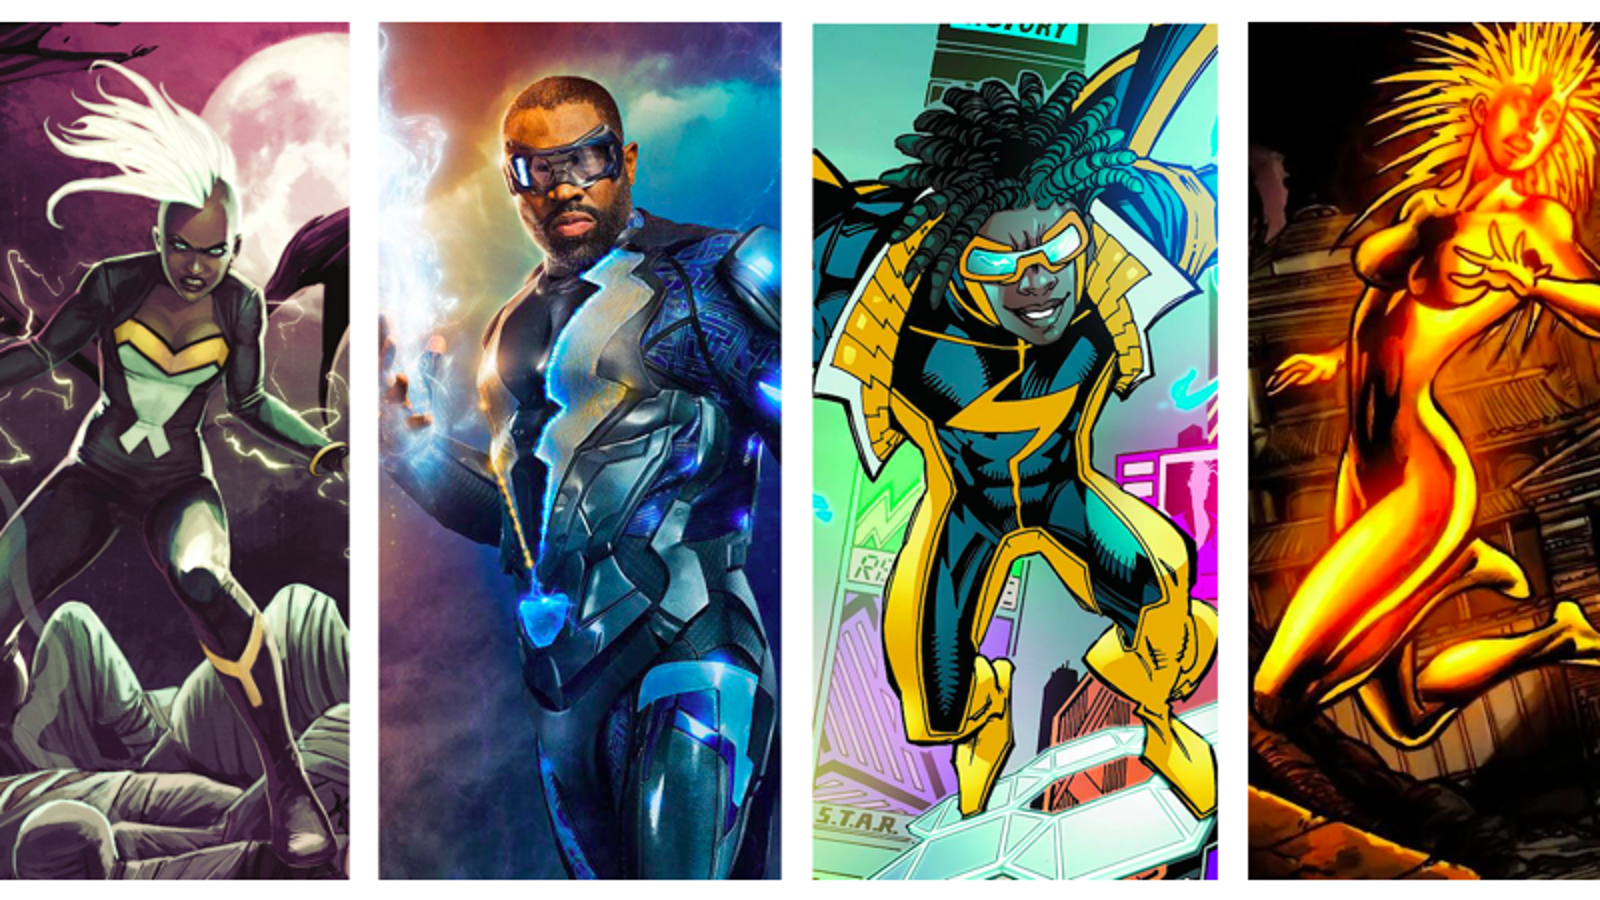 Why Do So Many Black Superheroes Have Electricity Powers?